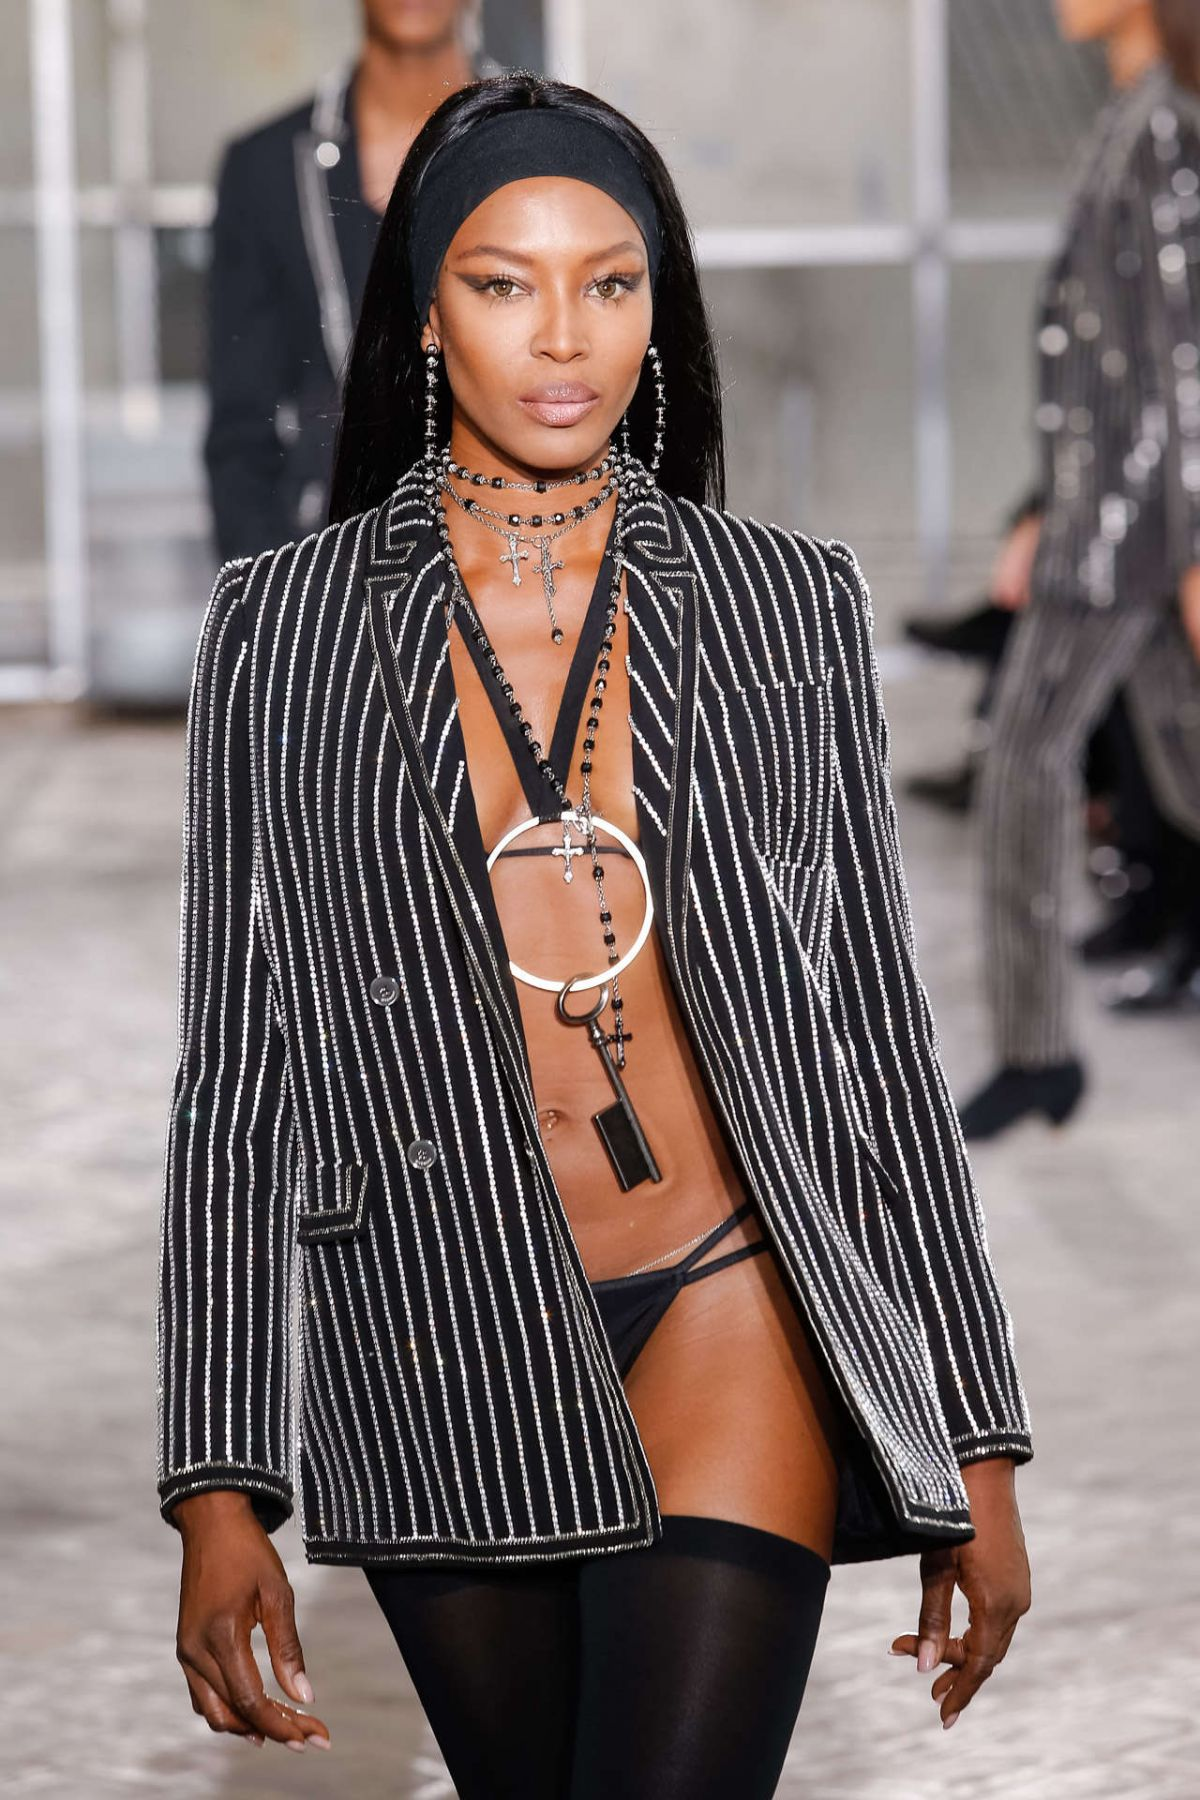 Naomi Campbell On The Runway Of Givenchy Fashion Show In Paris 5 Hawtcelebs